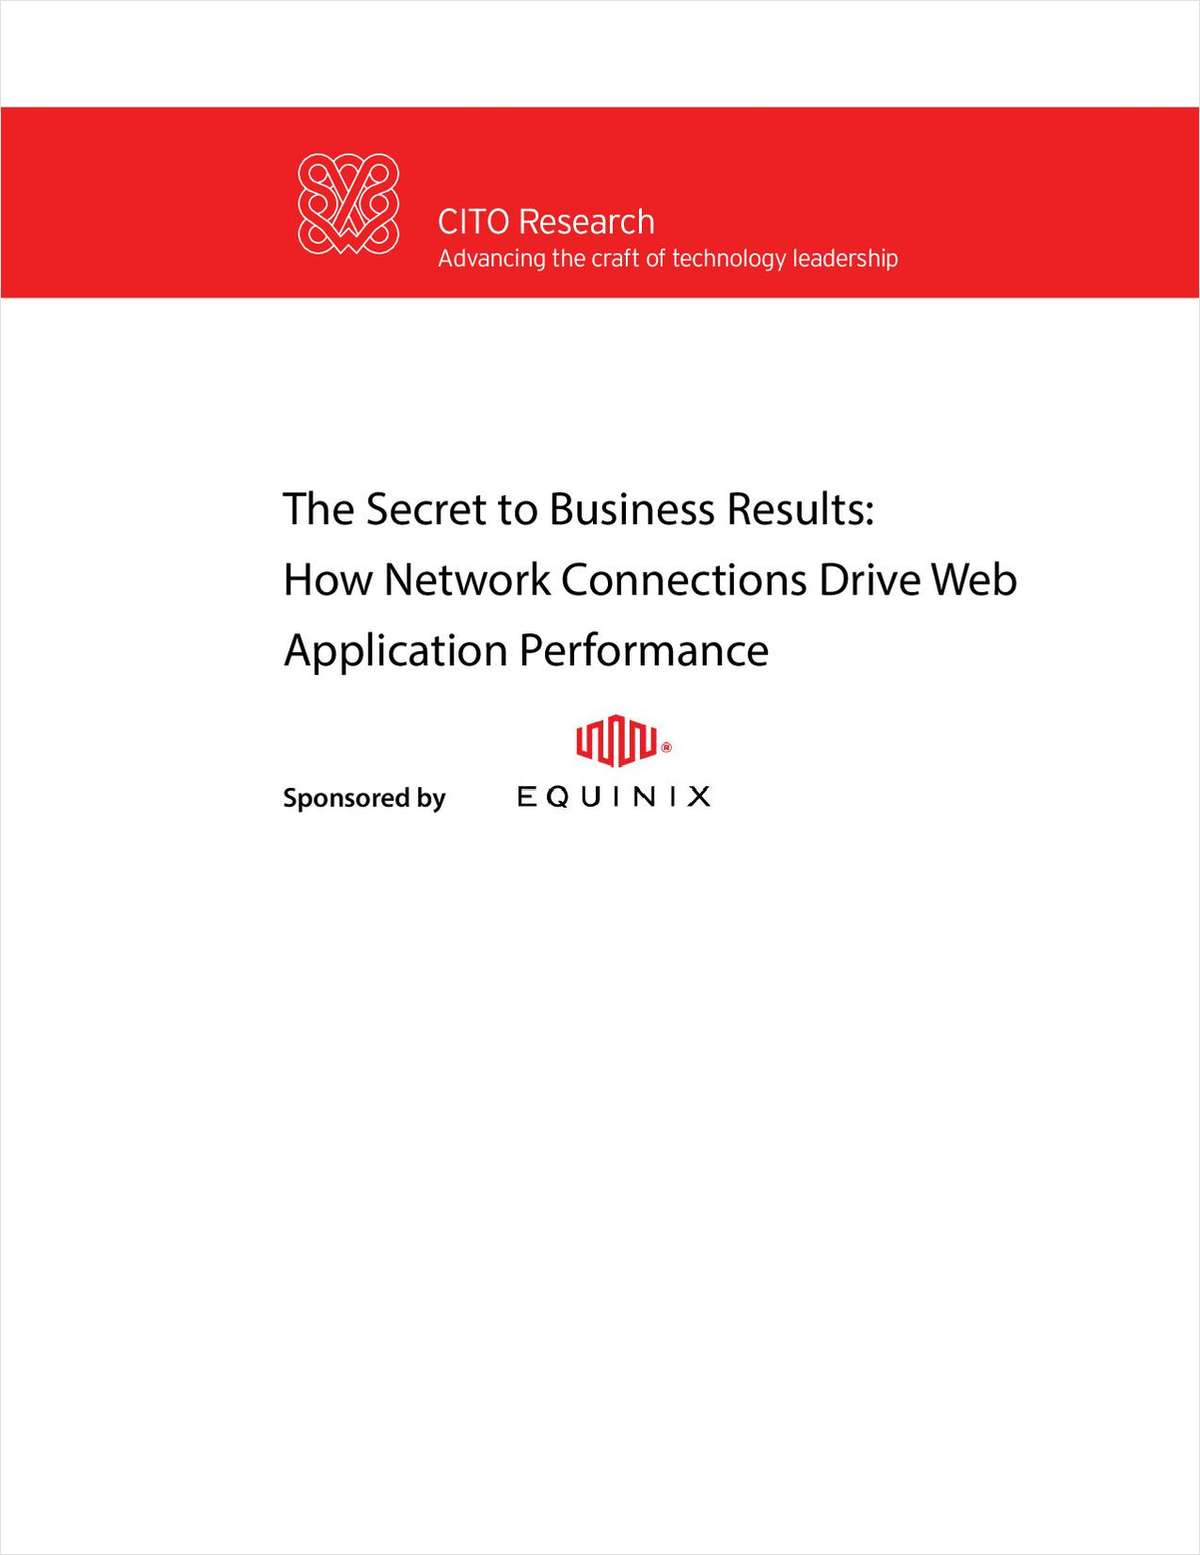 The Secret to Business Results: How Network Connections Drive Web Application Performance